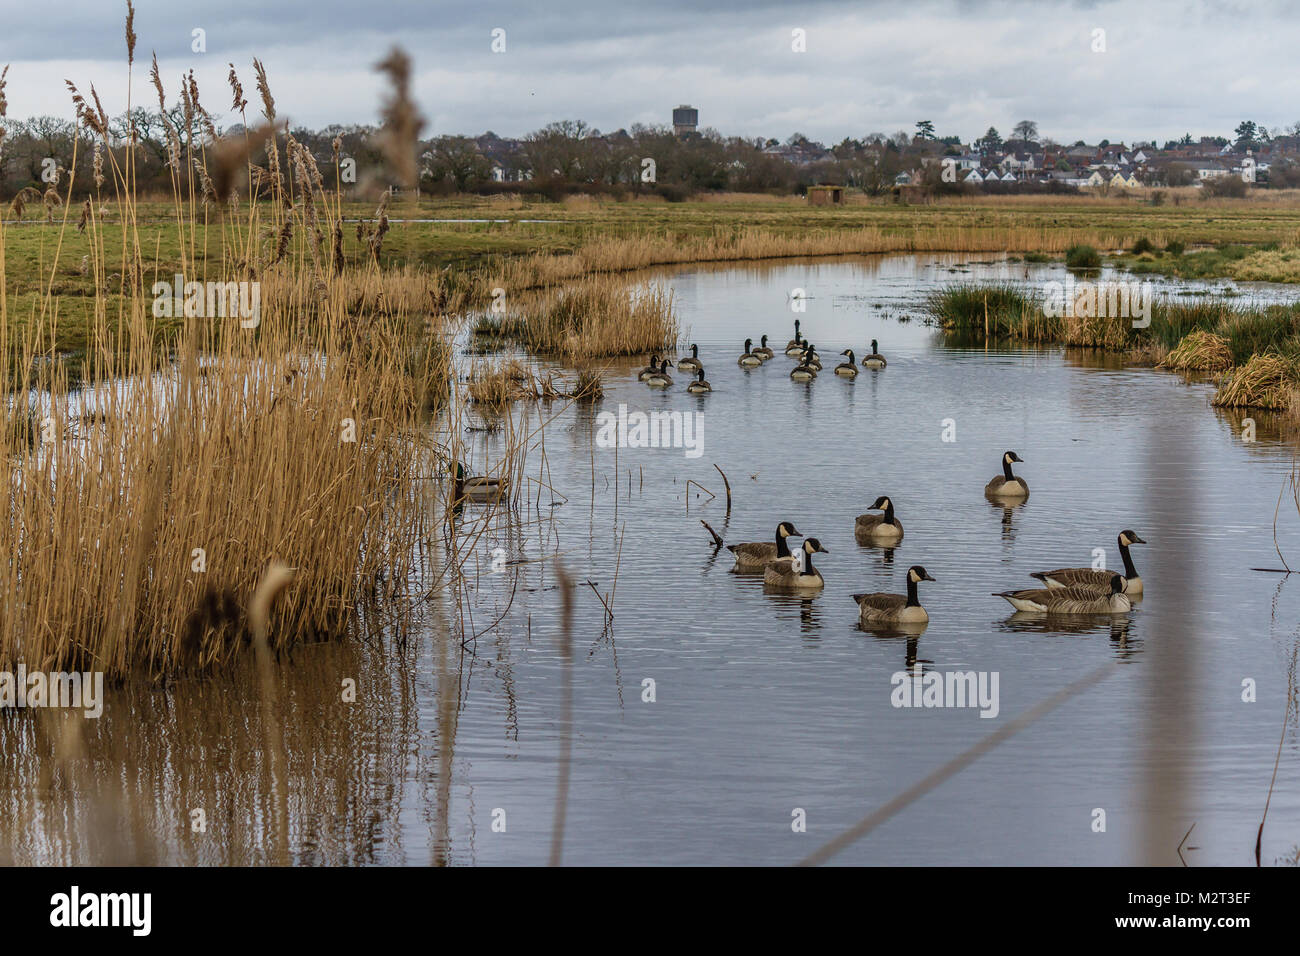 Canada geese on flooded field at RSPB reserve of Exminster Marsh, Exminster, south Devon. Near the Exe Estuary and - Stock Image